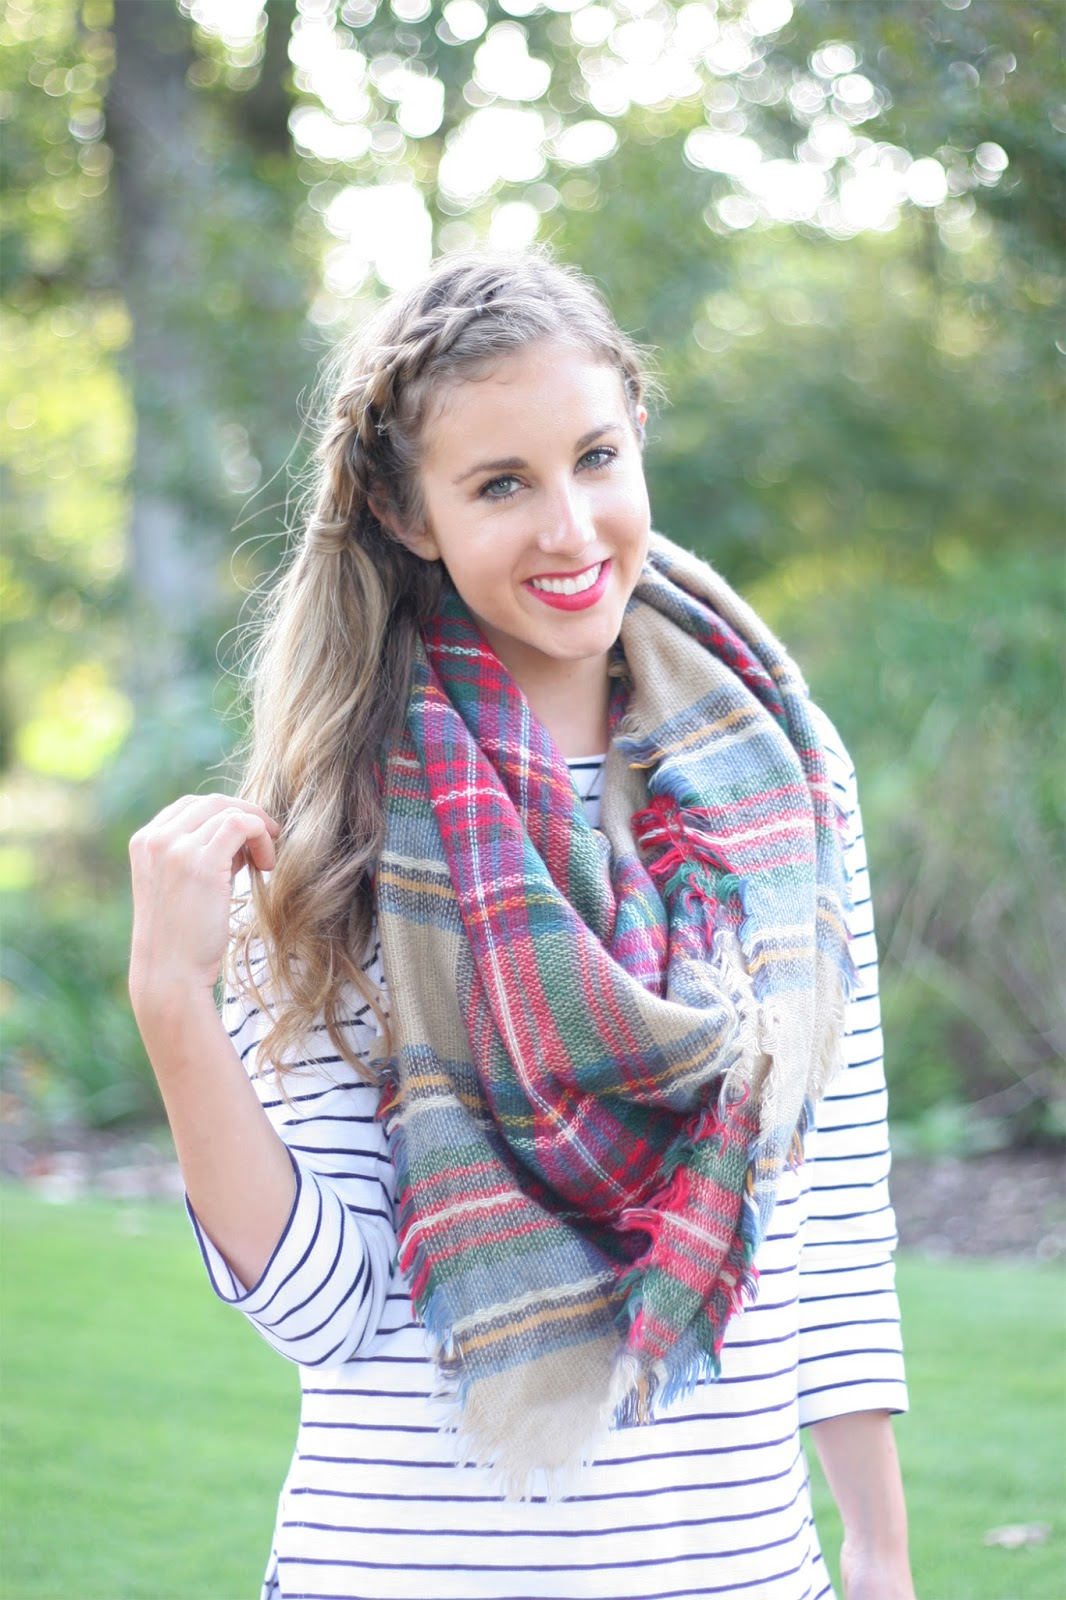 Classic-plaid-blanket-scarf-with-a-striped-top - The-perfect-fall-layers!